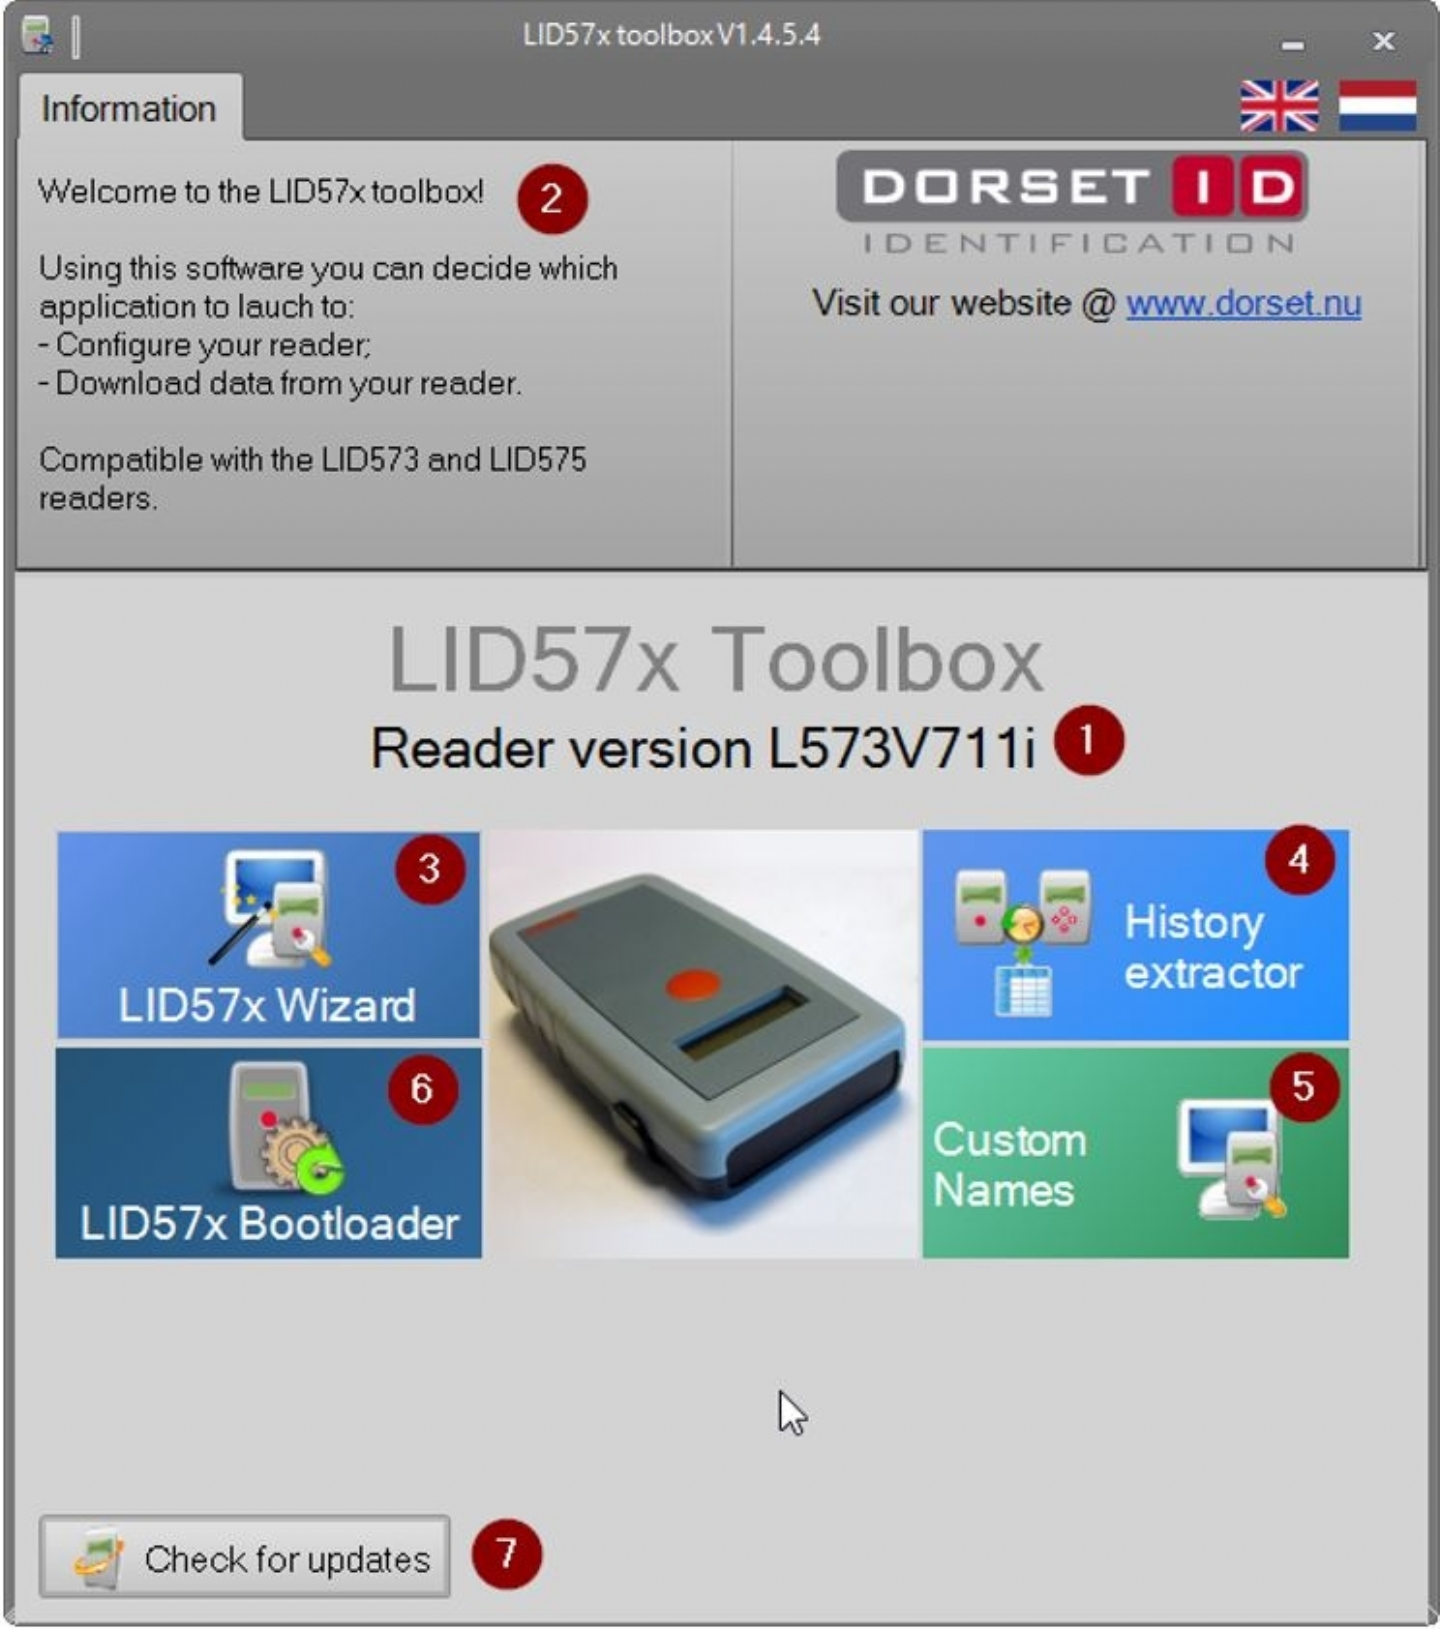 New LID 57x Toolbox Software released